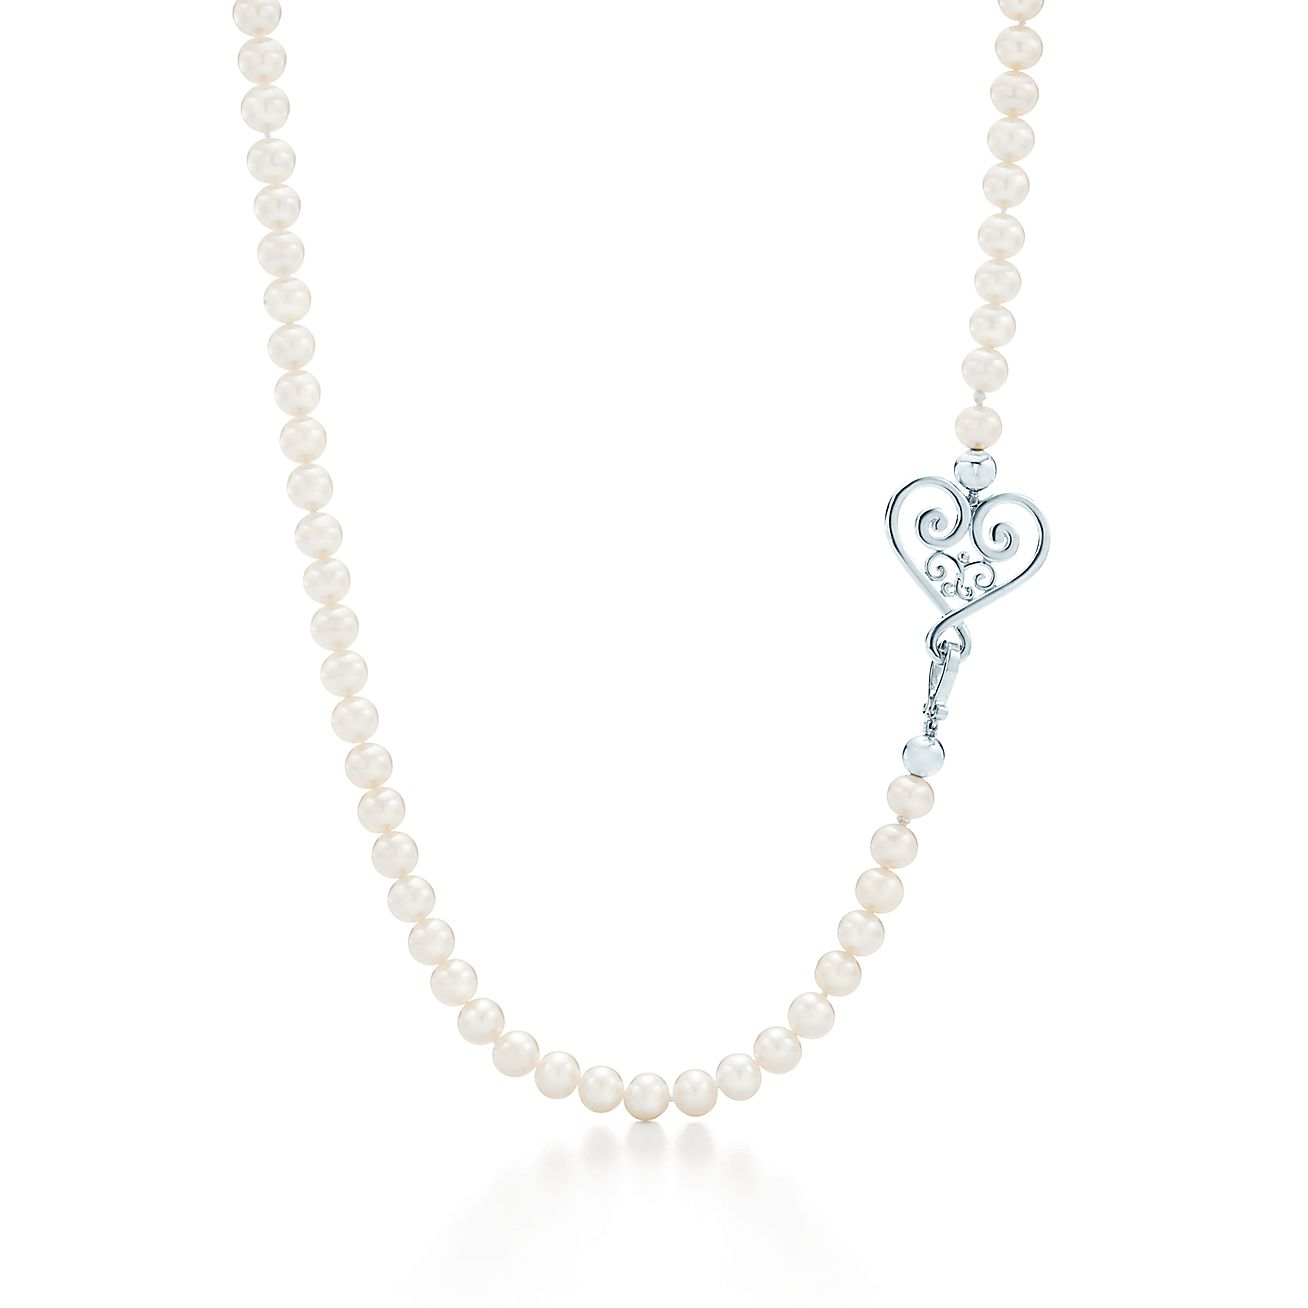 products single company necklace pearl trading akogare liz